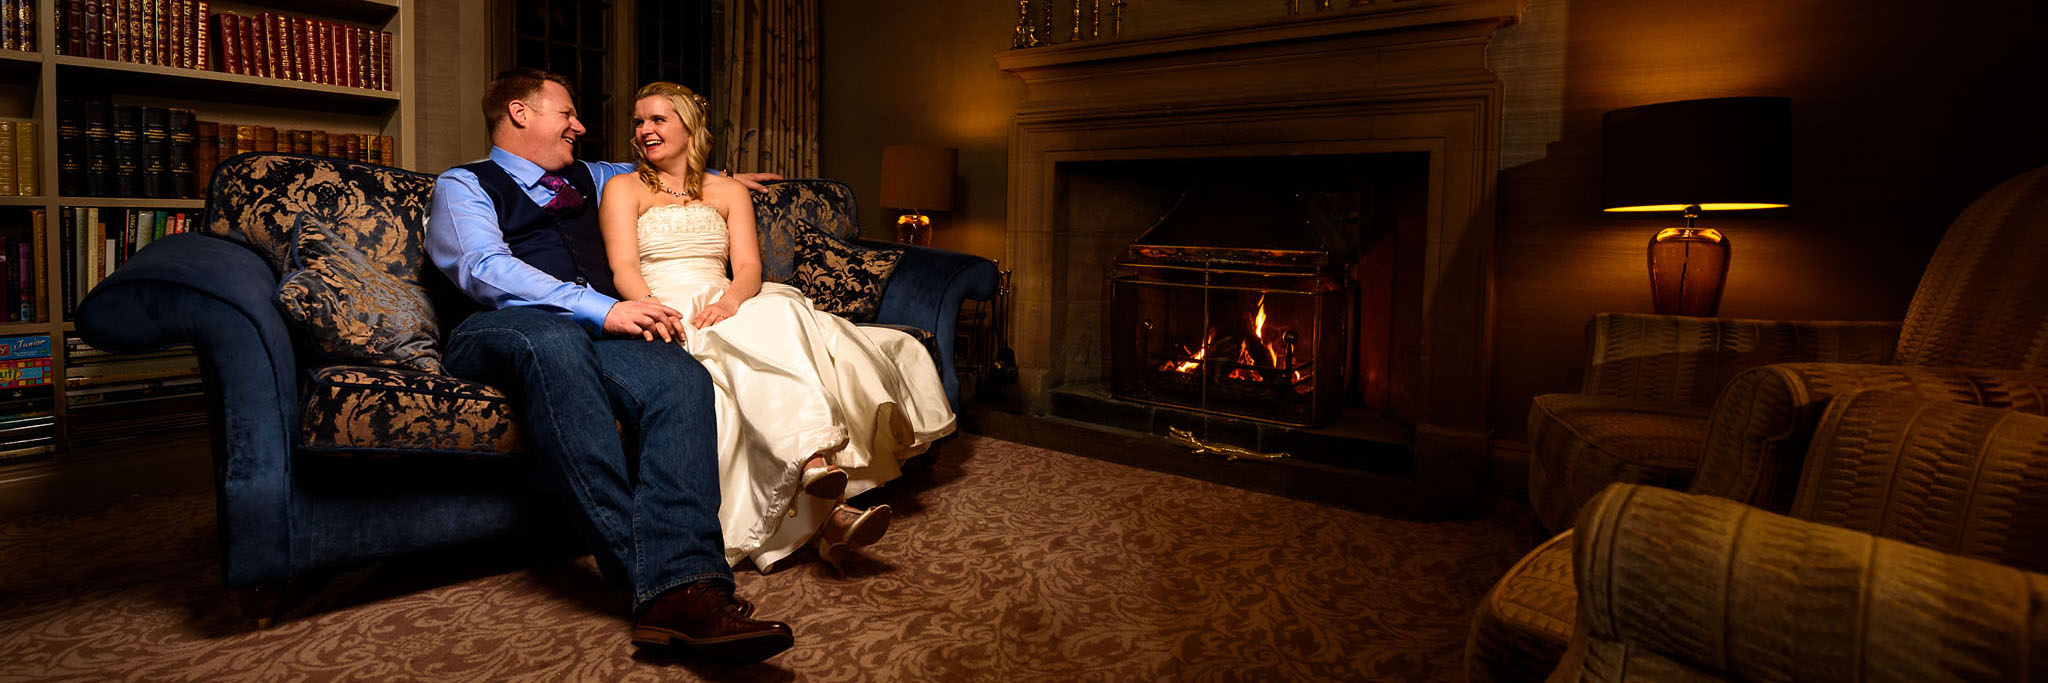 bride and groom sat cosied up on the sofa next to the fire